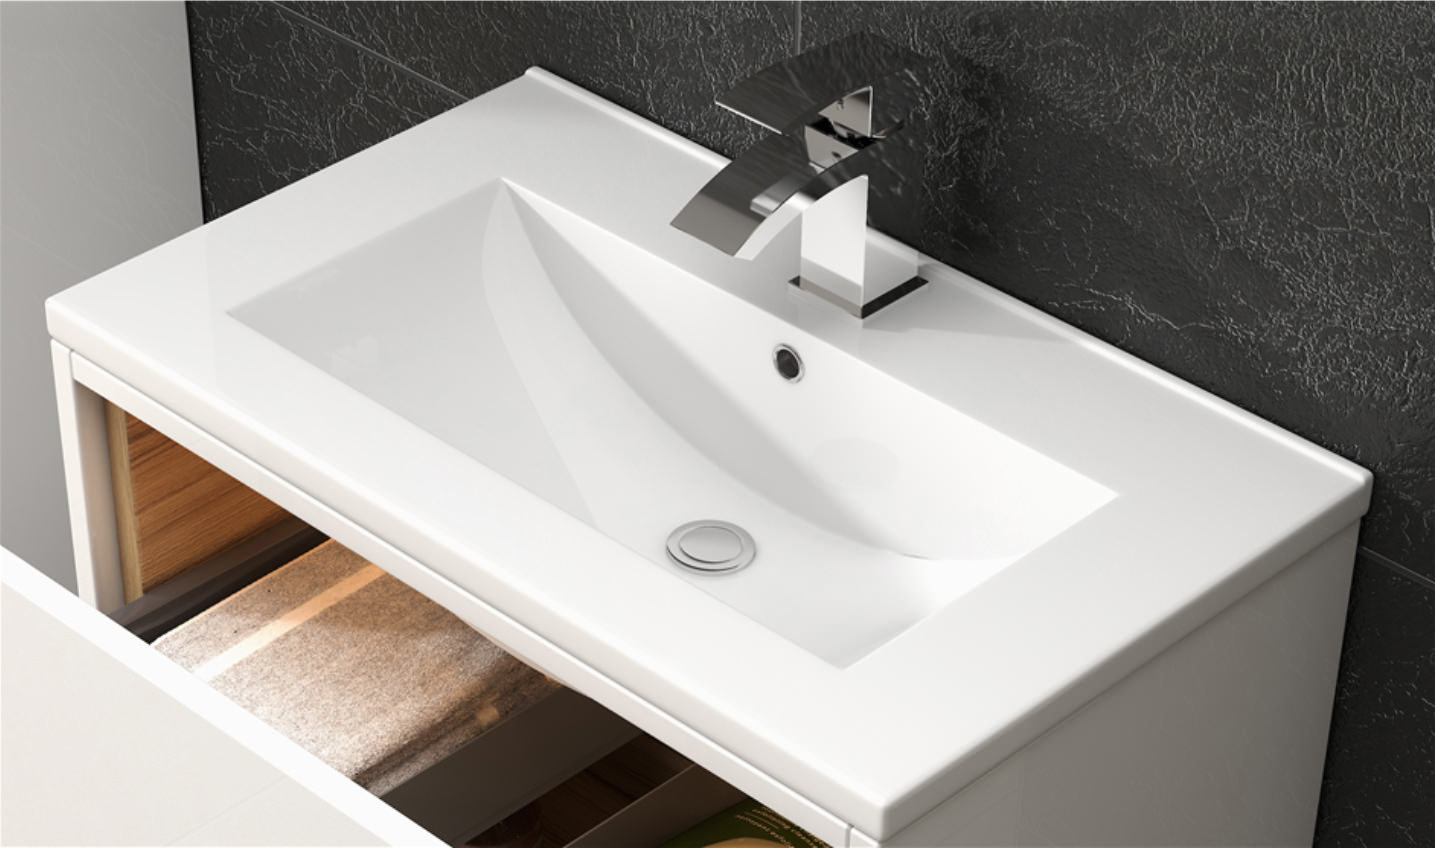 Premier Athena 600mm 1 Drawer Wall Hung Cabinet With Basin